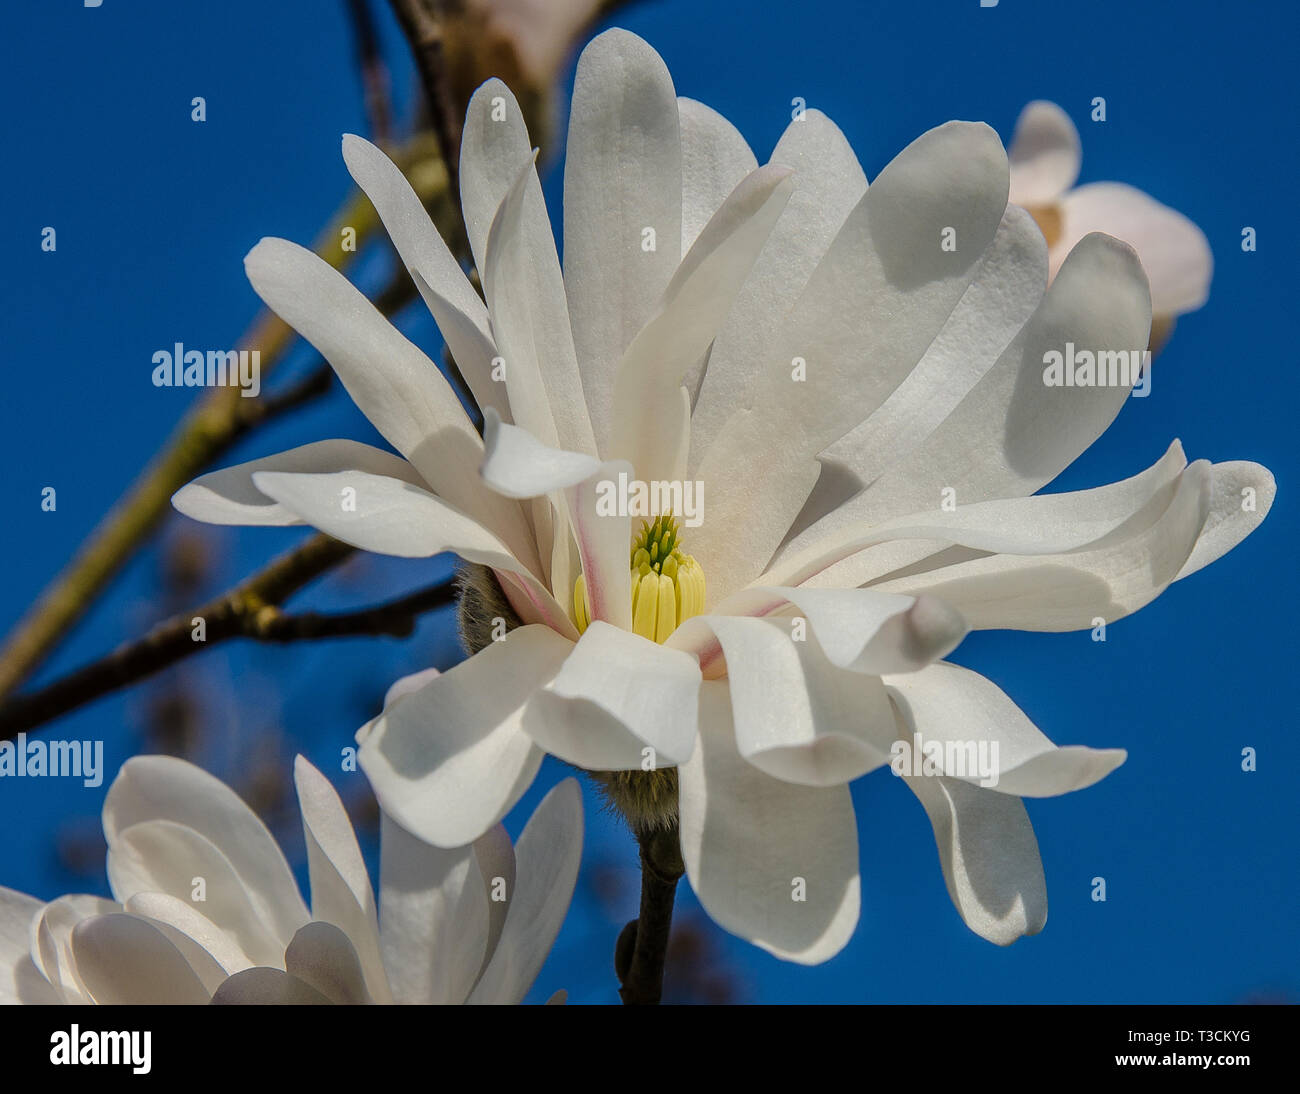 Magnolia is a large genus of about 210 flowering plant species in the family Magnoliaceae. It is named after French botanist Pierre Magnol. Stock Photo